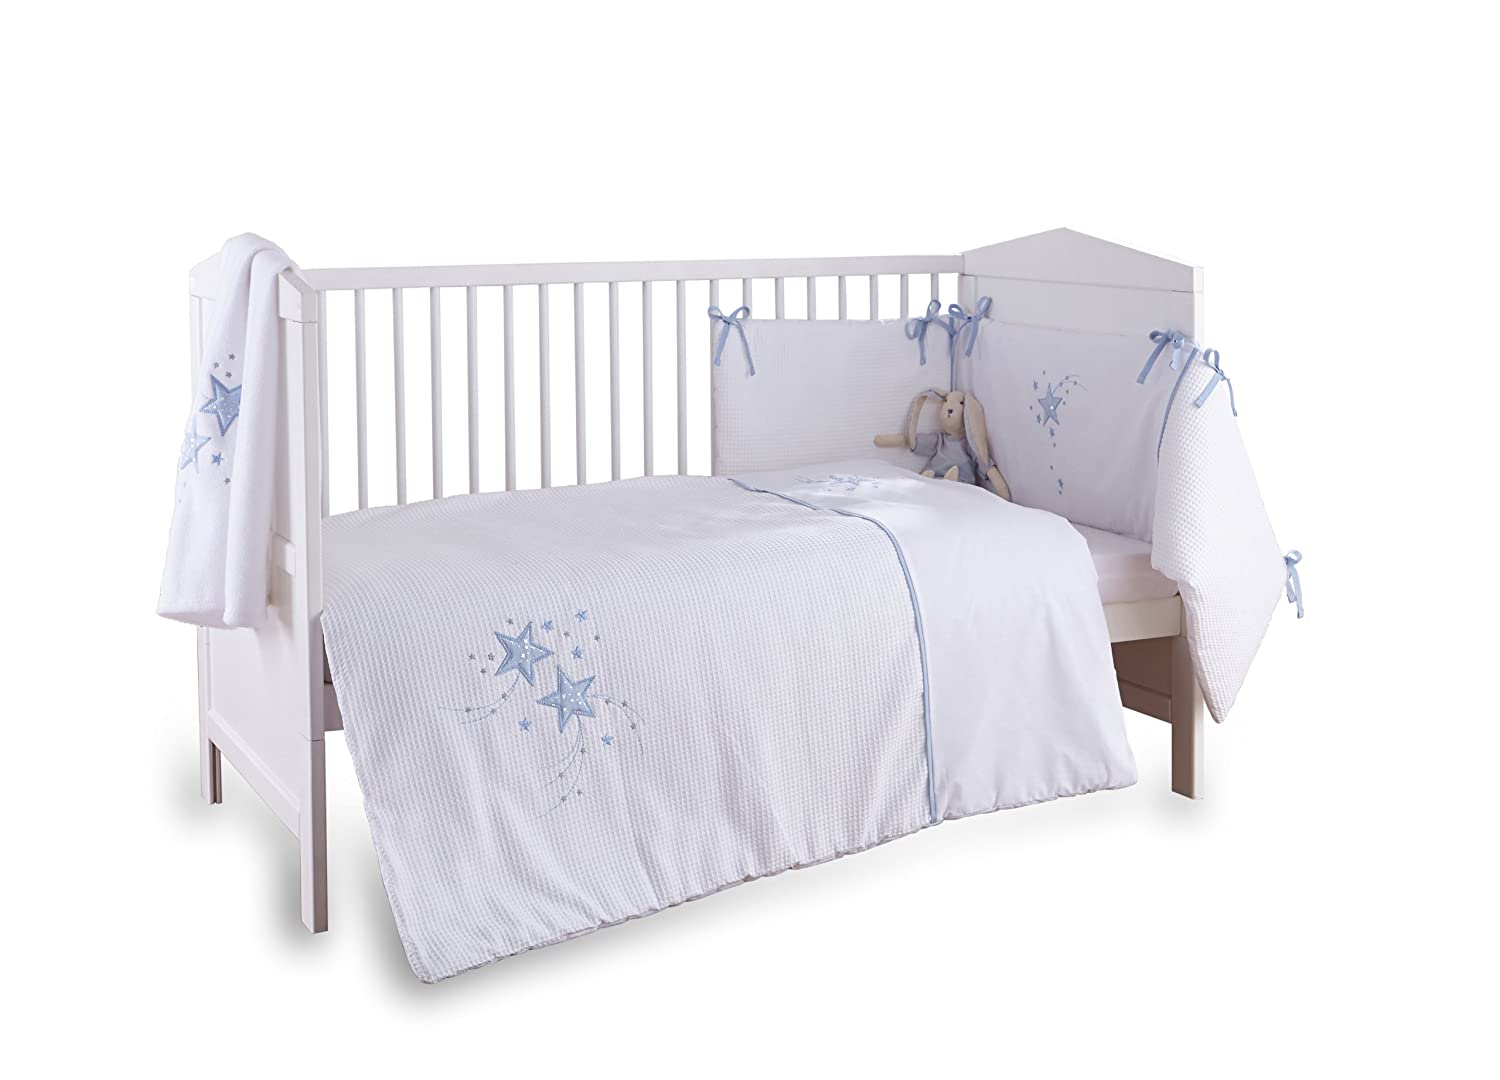 Clair de Lune 3-Piece Blue Stardust Cot/Cot Bed Quilt, Bumper and Fitted Sheet Bedding Set CL4815B